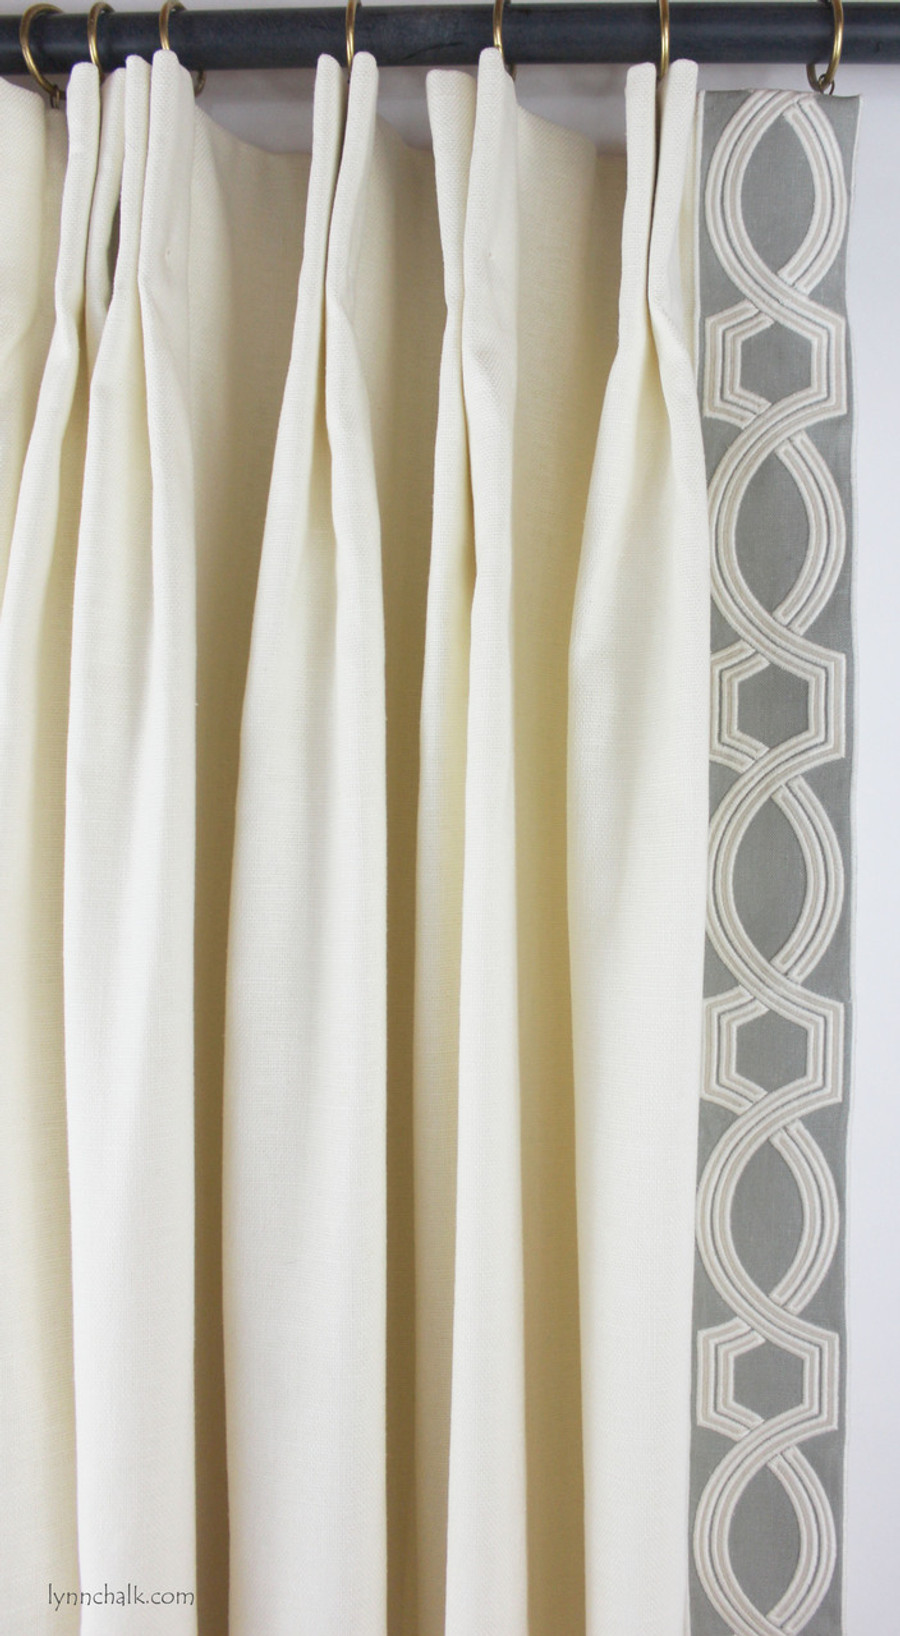 Drapes in Trend 01838T 07 with Samuel & Sons Ogee Embroidered Trim